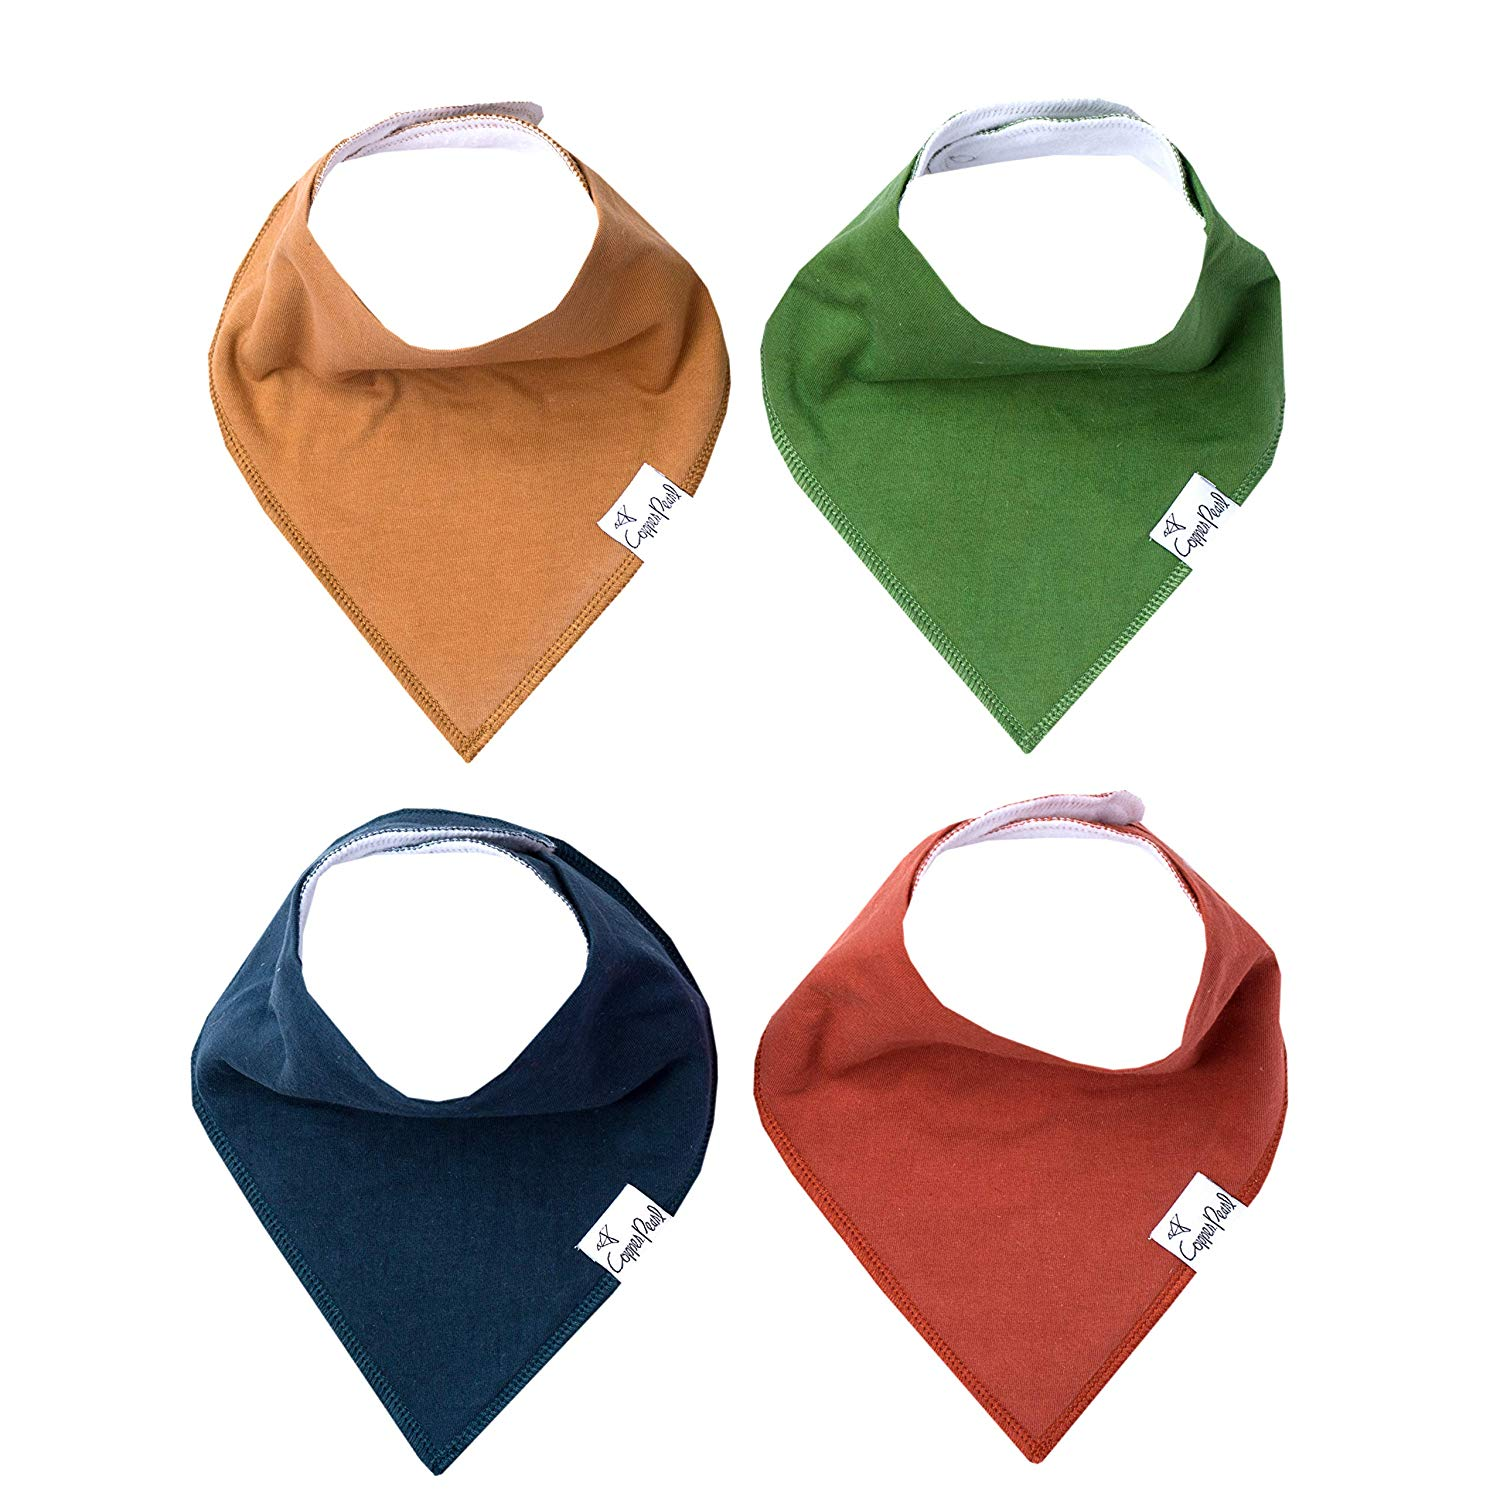 Bandana Bib Set - Ridge